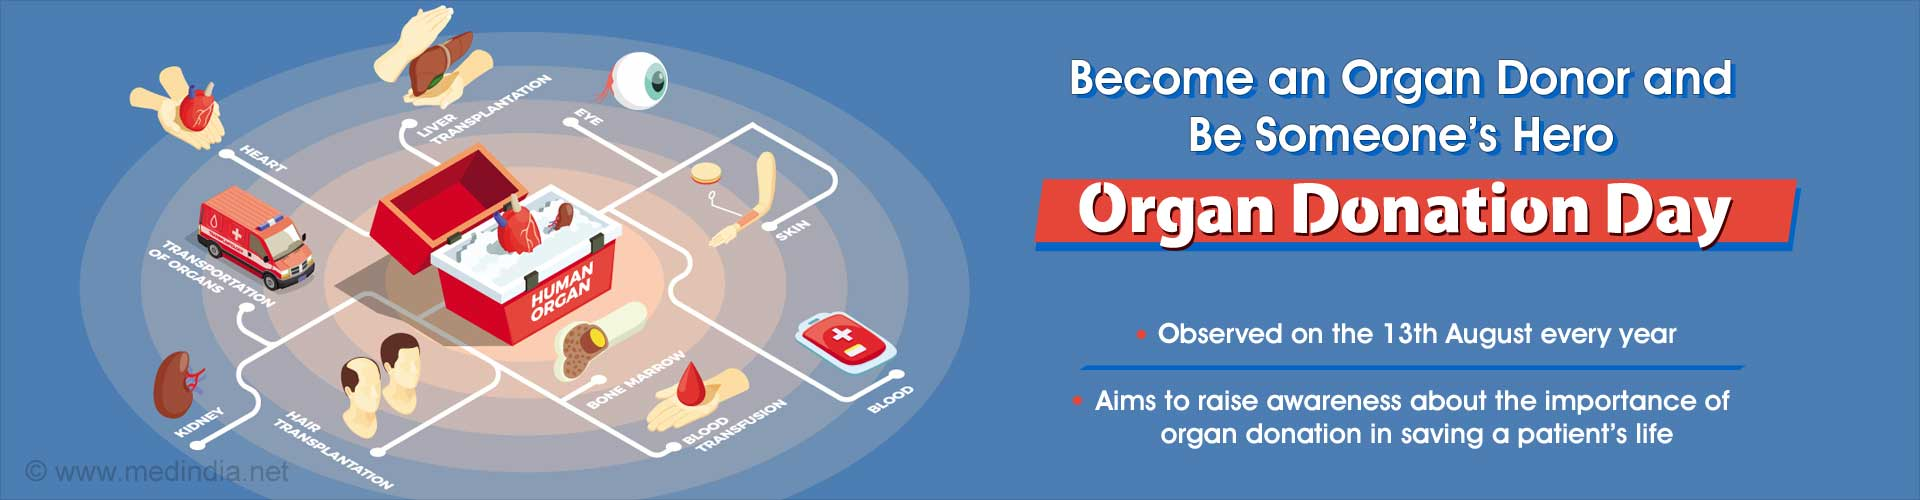 Organ Donation Week in India – Donate Your Organs and Save Lives